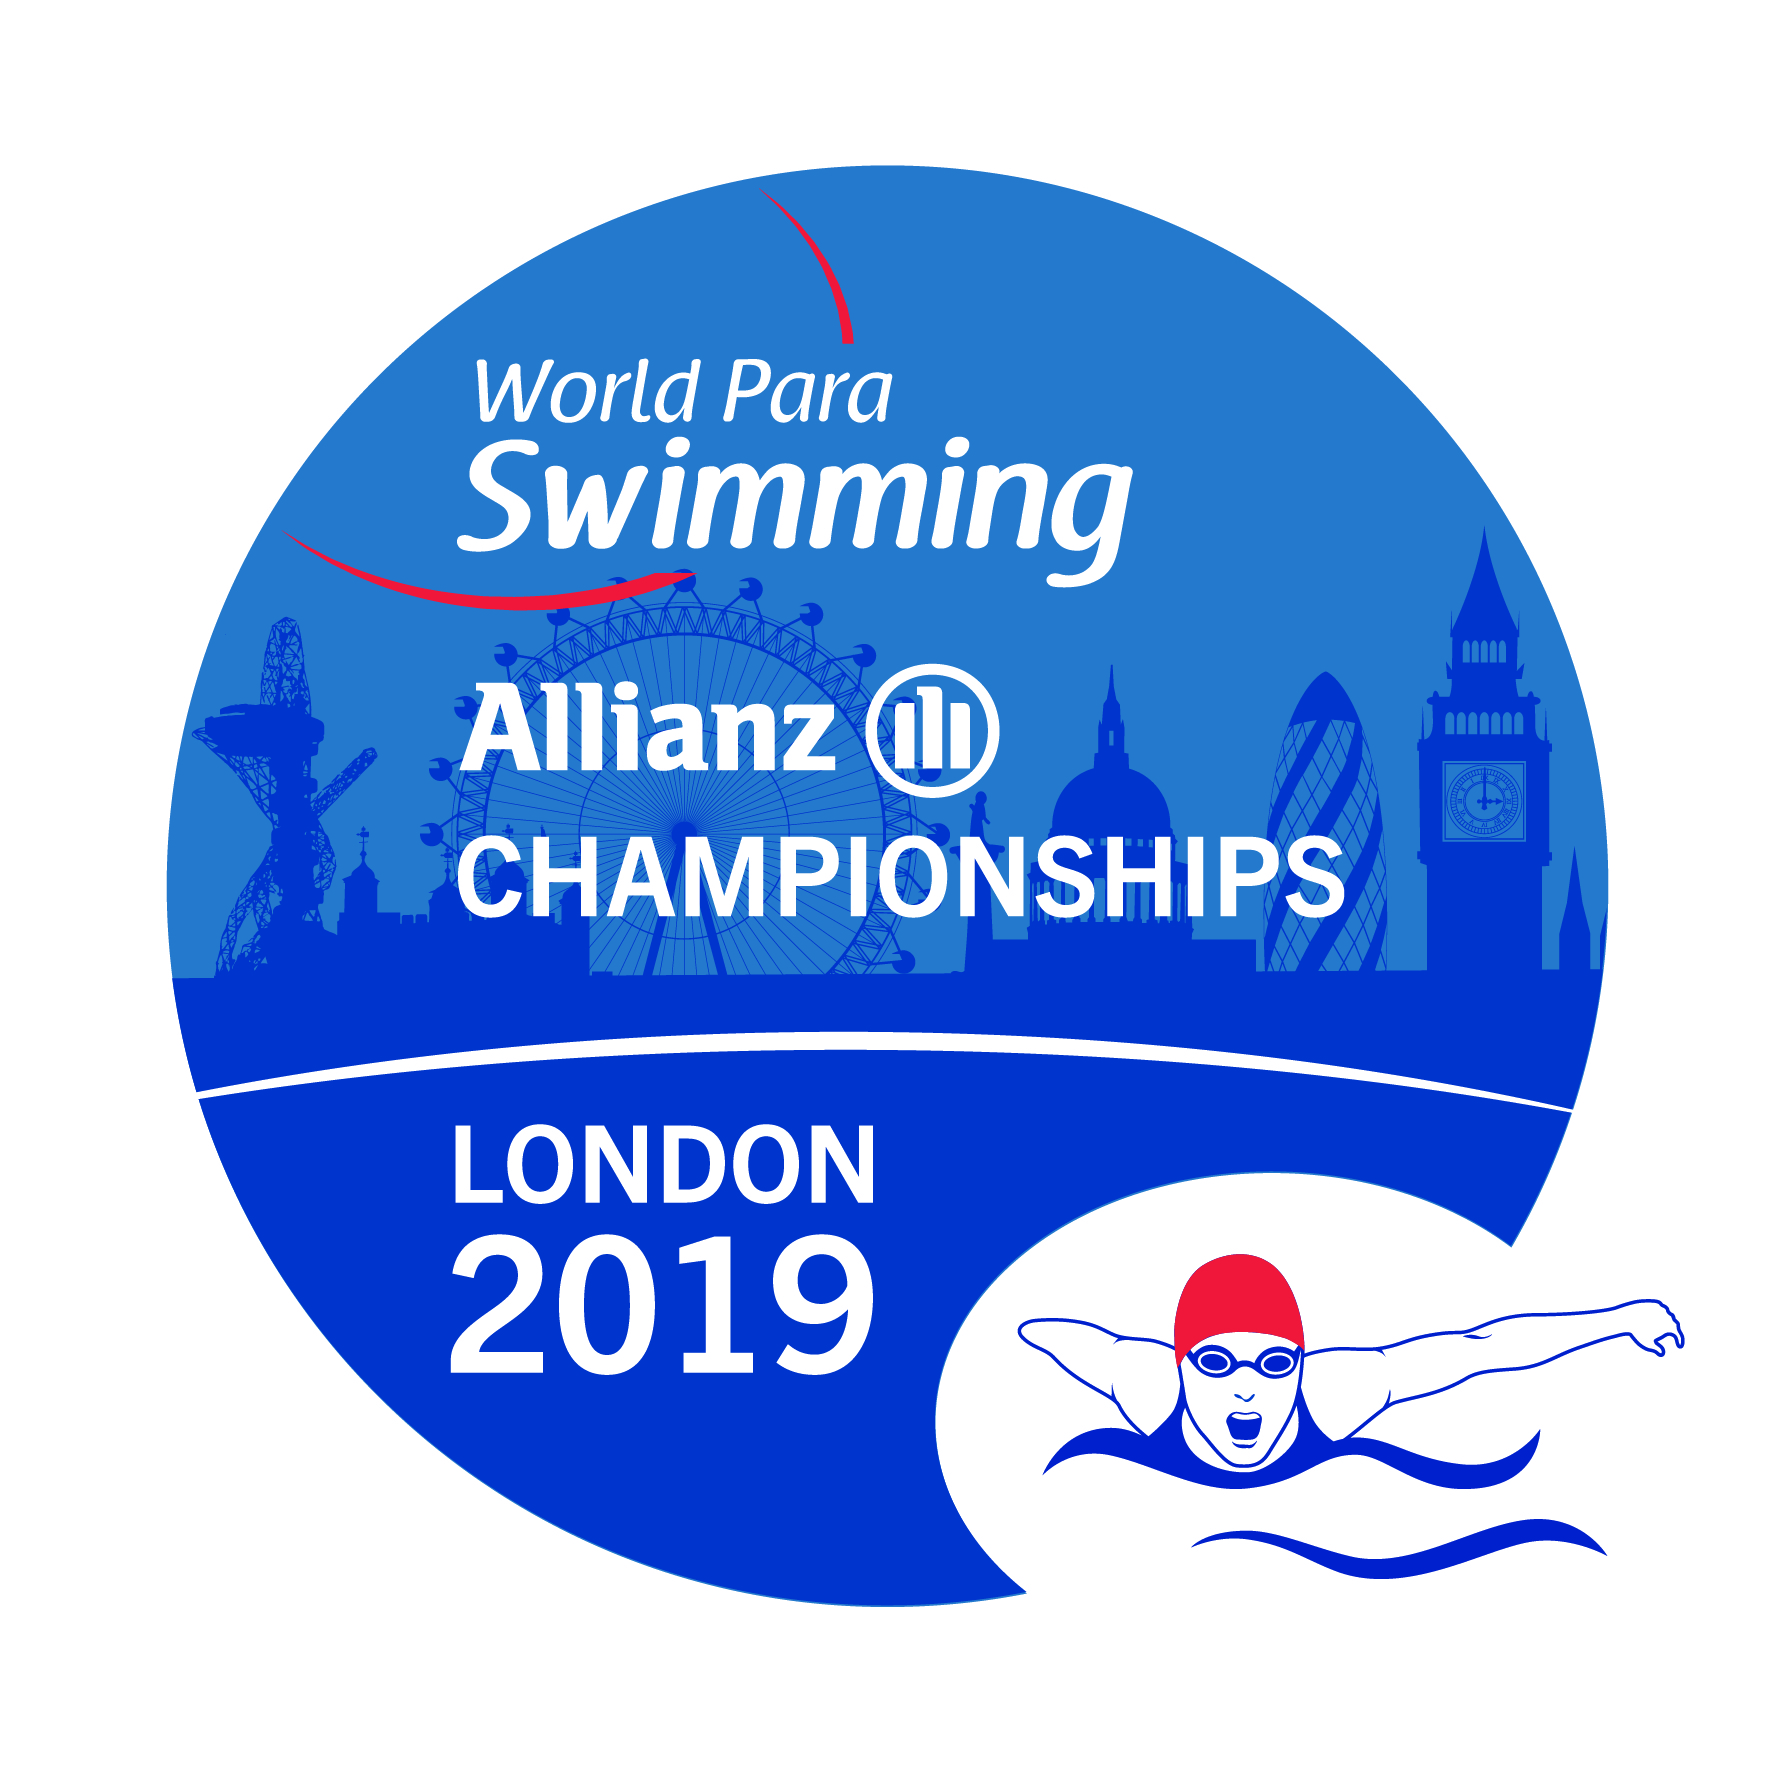 the official logo of the London 2019 World Para Swimming Championships